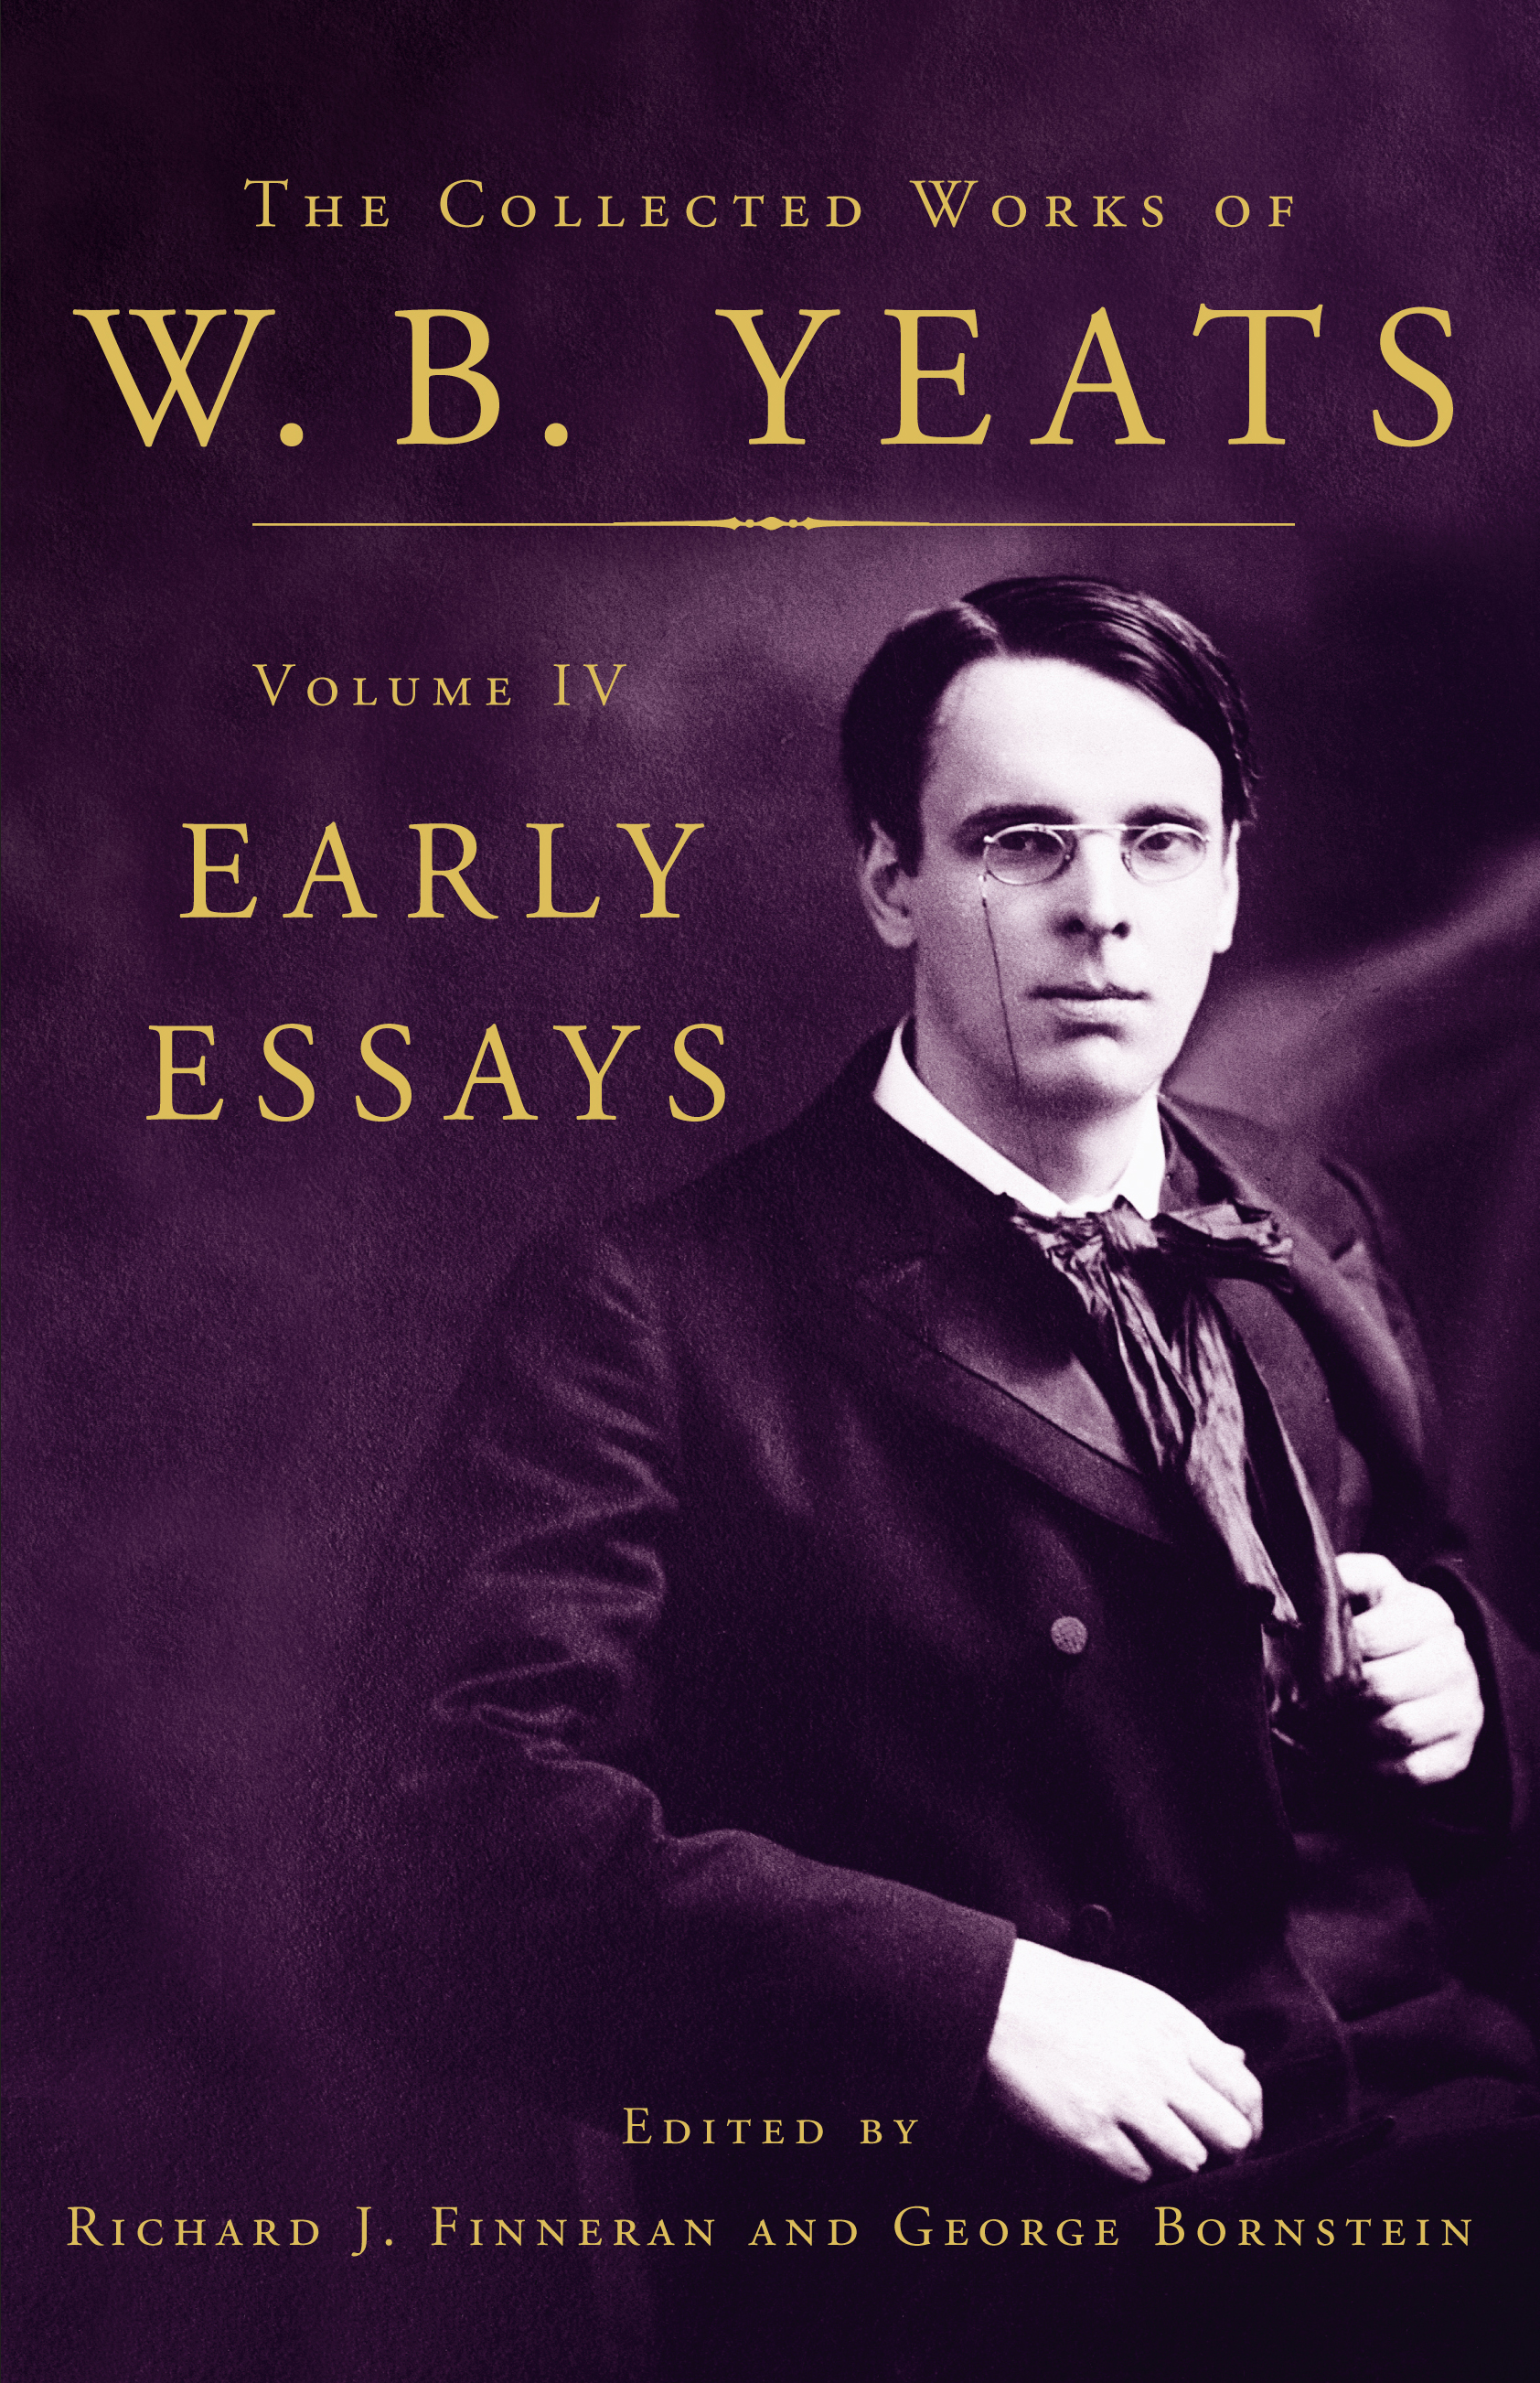 william butler yeats essay essay on william butler yeats among the collected works of w b yeats volume iv early essays book